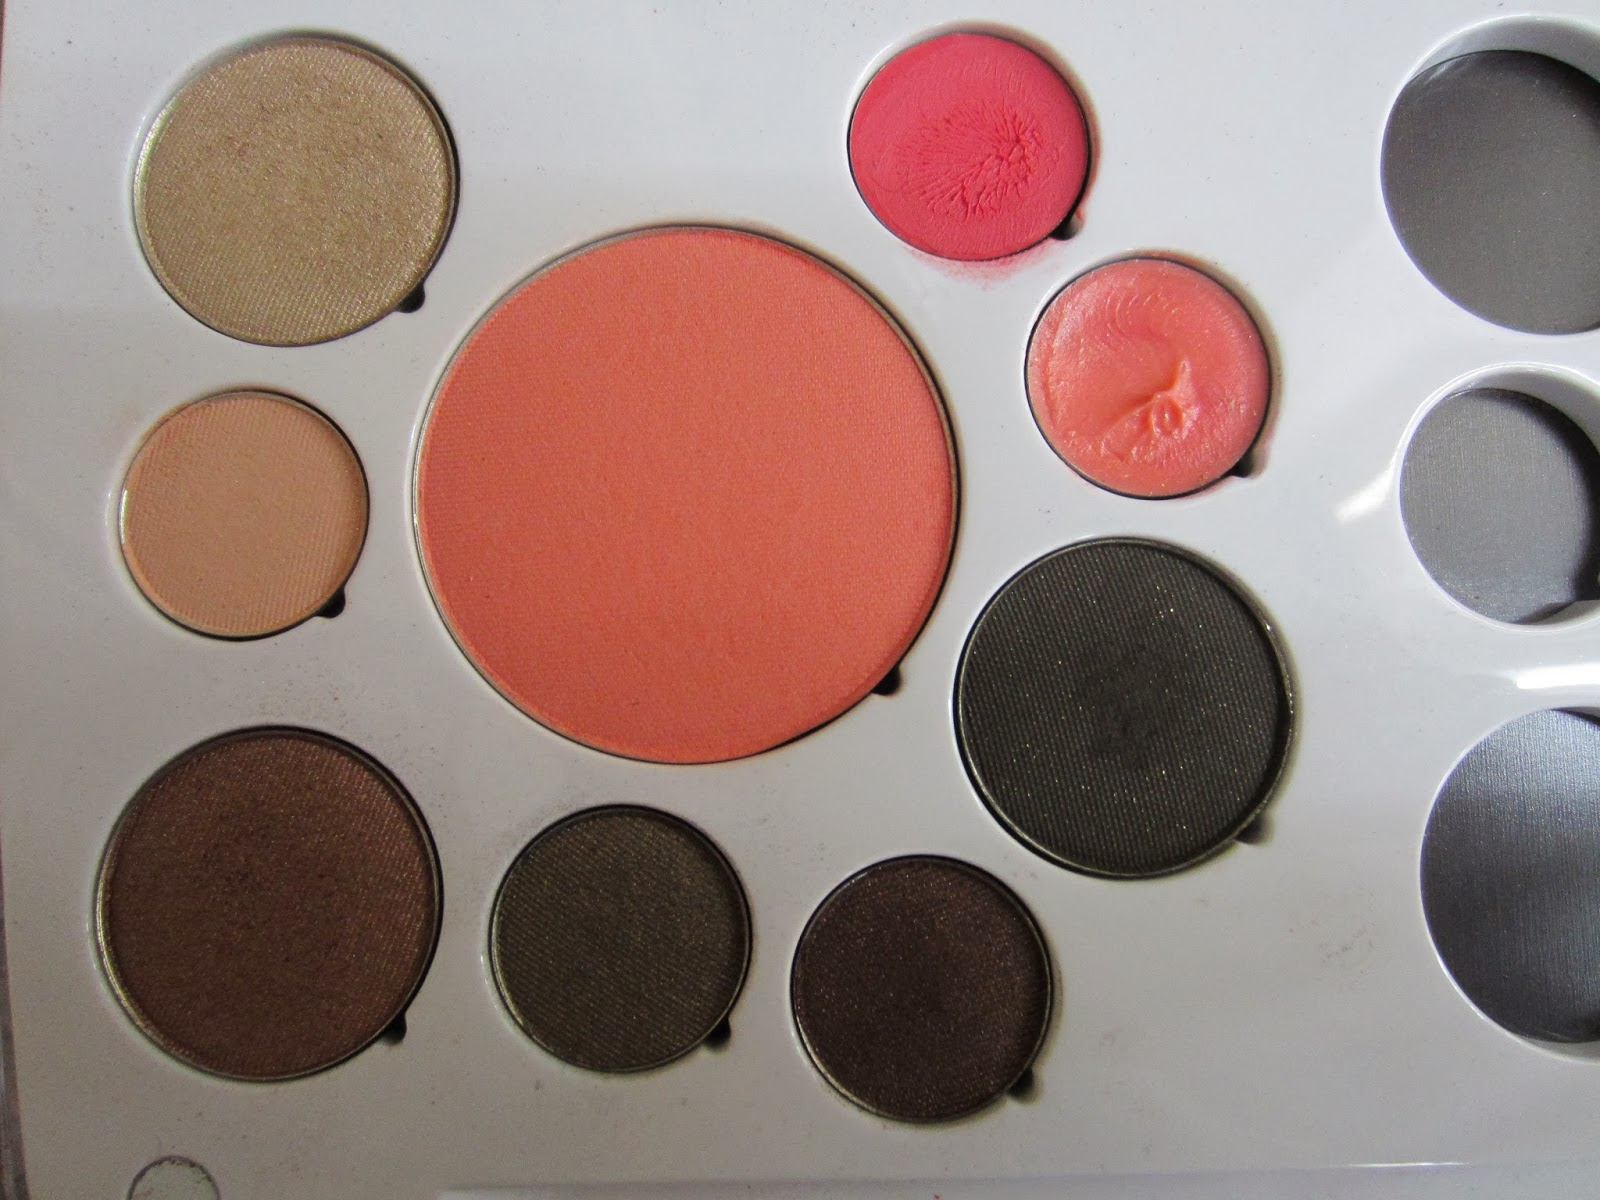 em cosmetics life palette review and swatches career life out on the back of the palette you can see all the s of the shadows